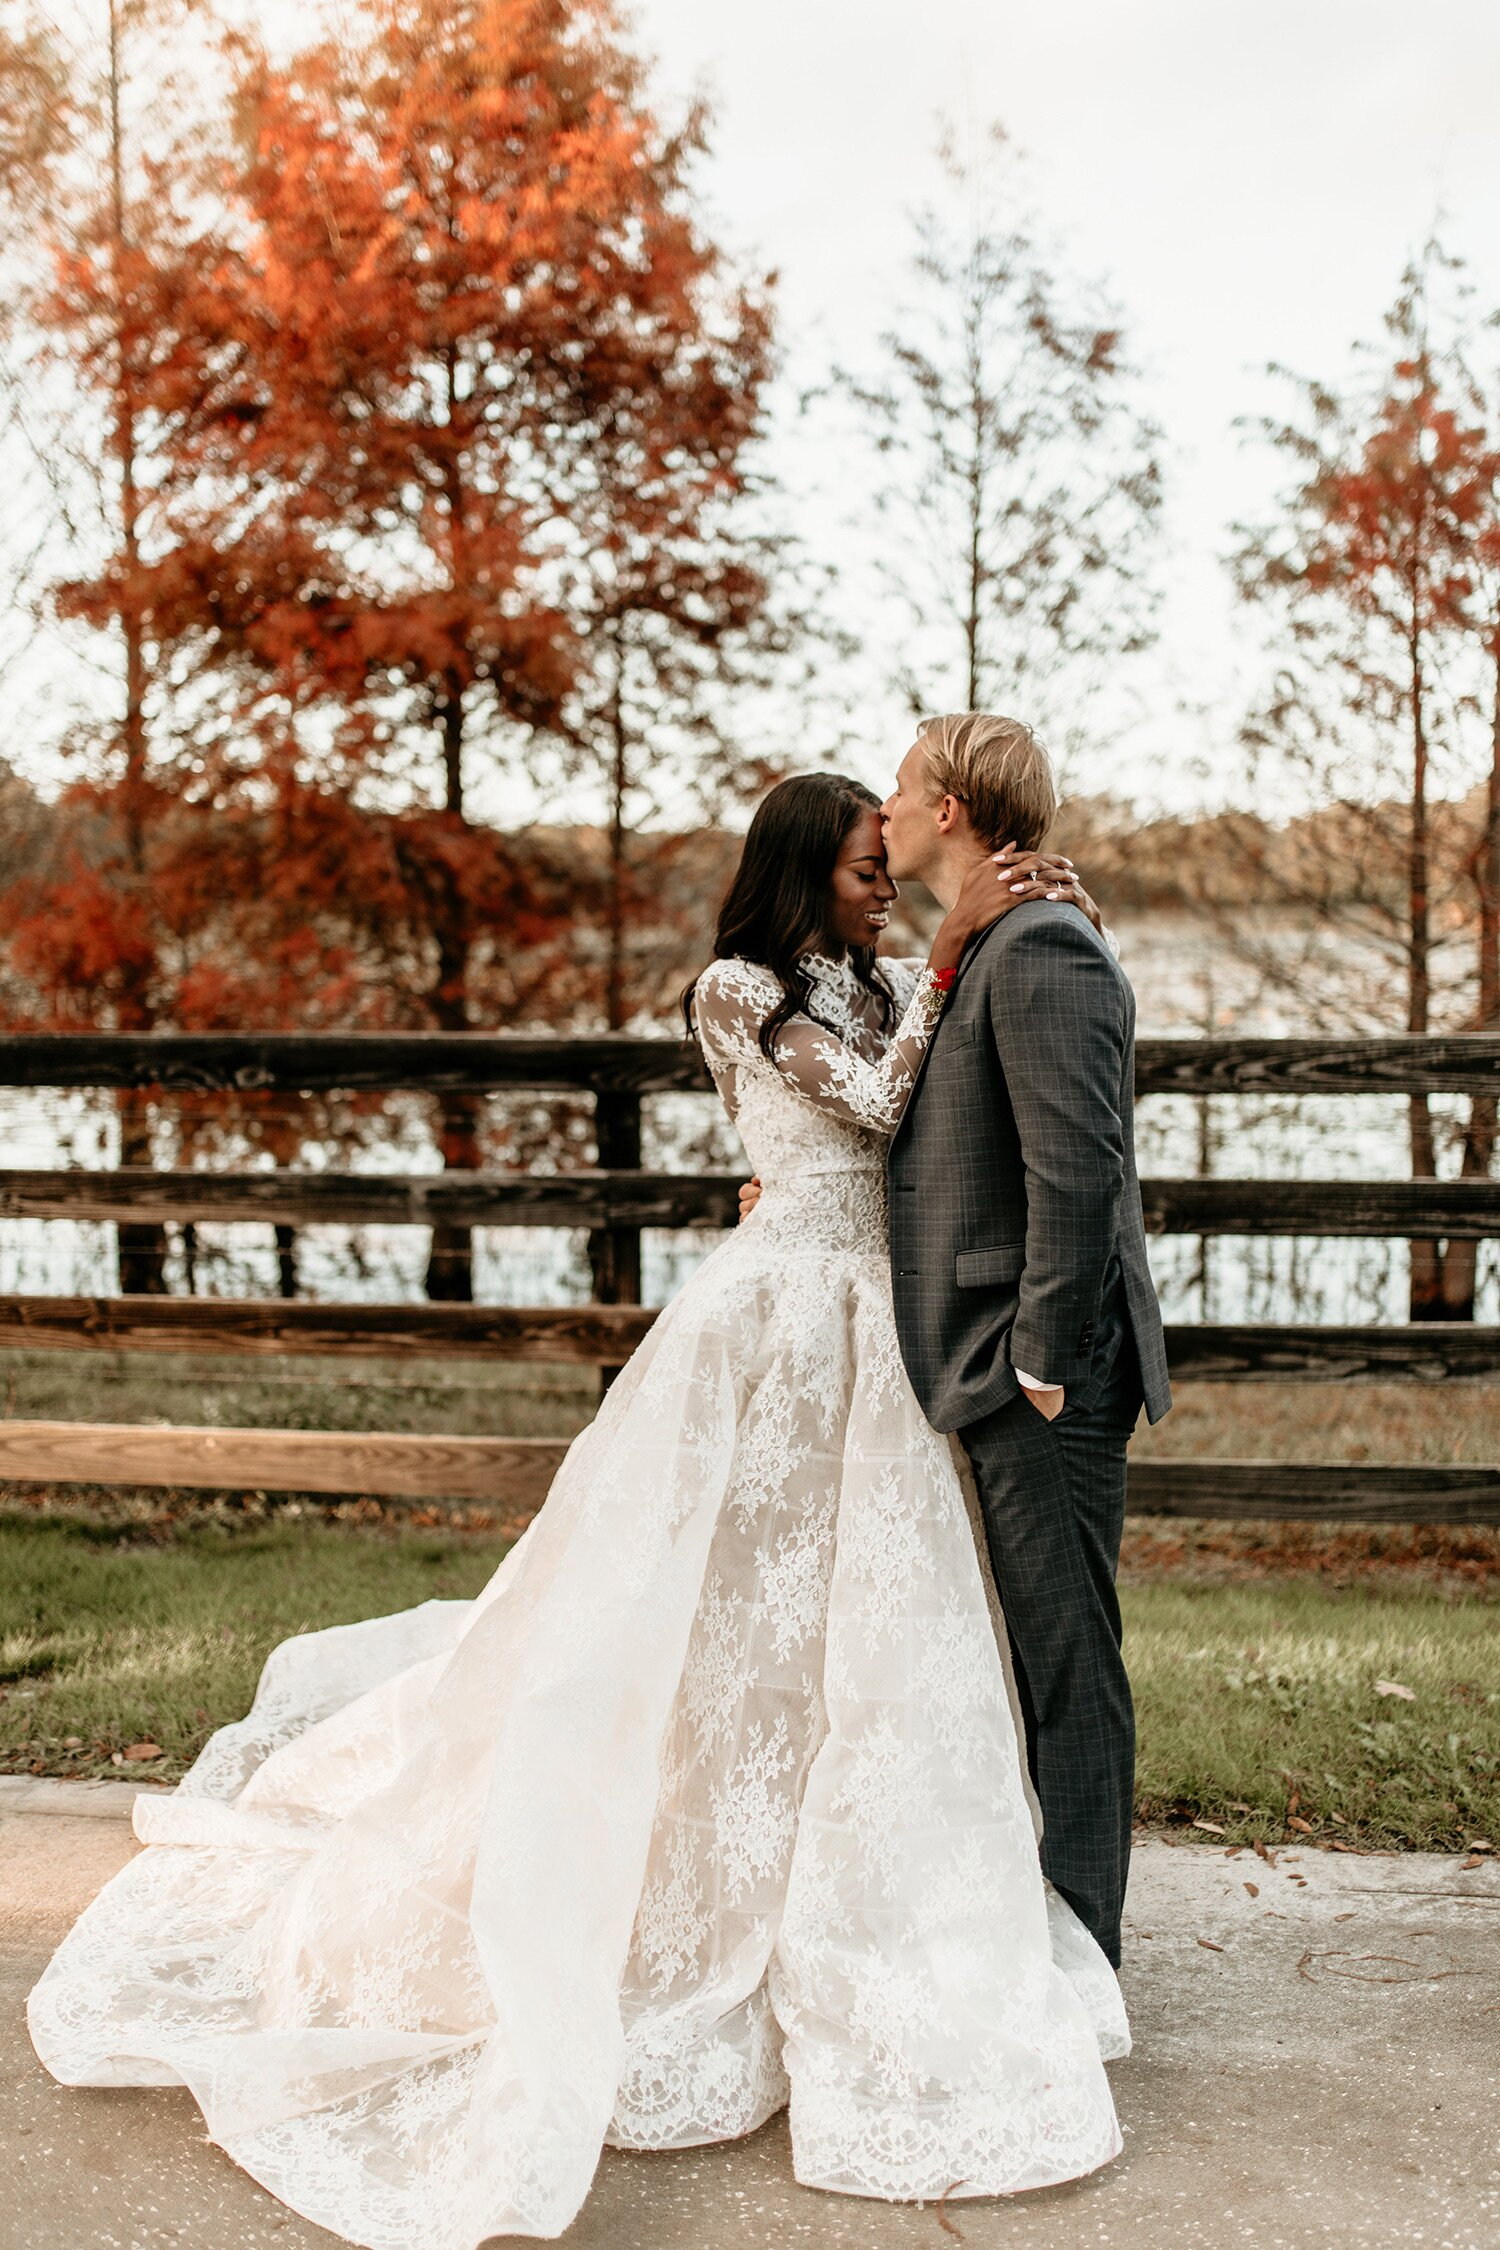 39 of Our Favorite Ideas for Your Fall Wedding | Martha Stewart ...